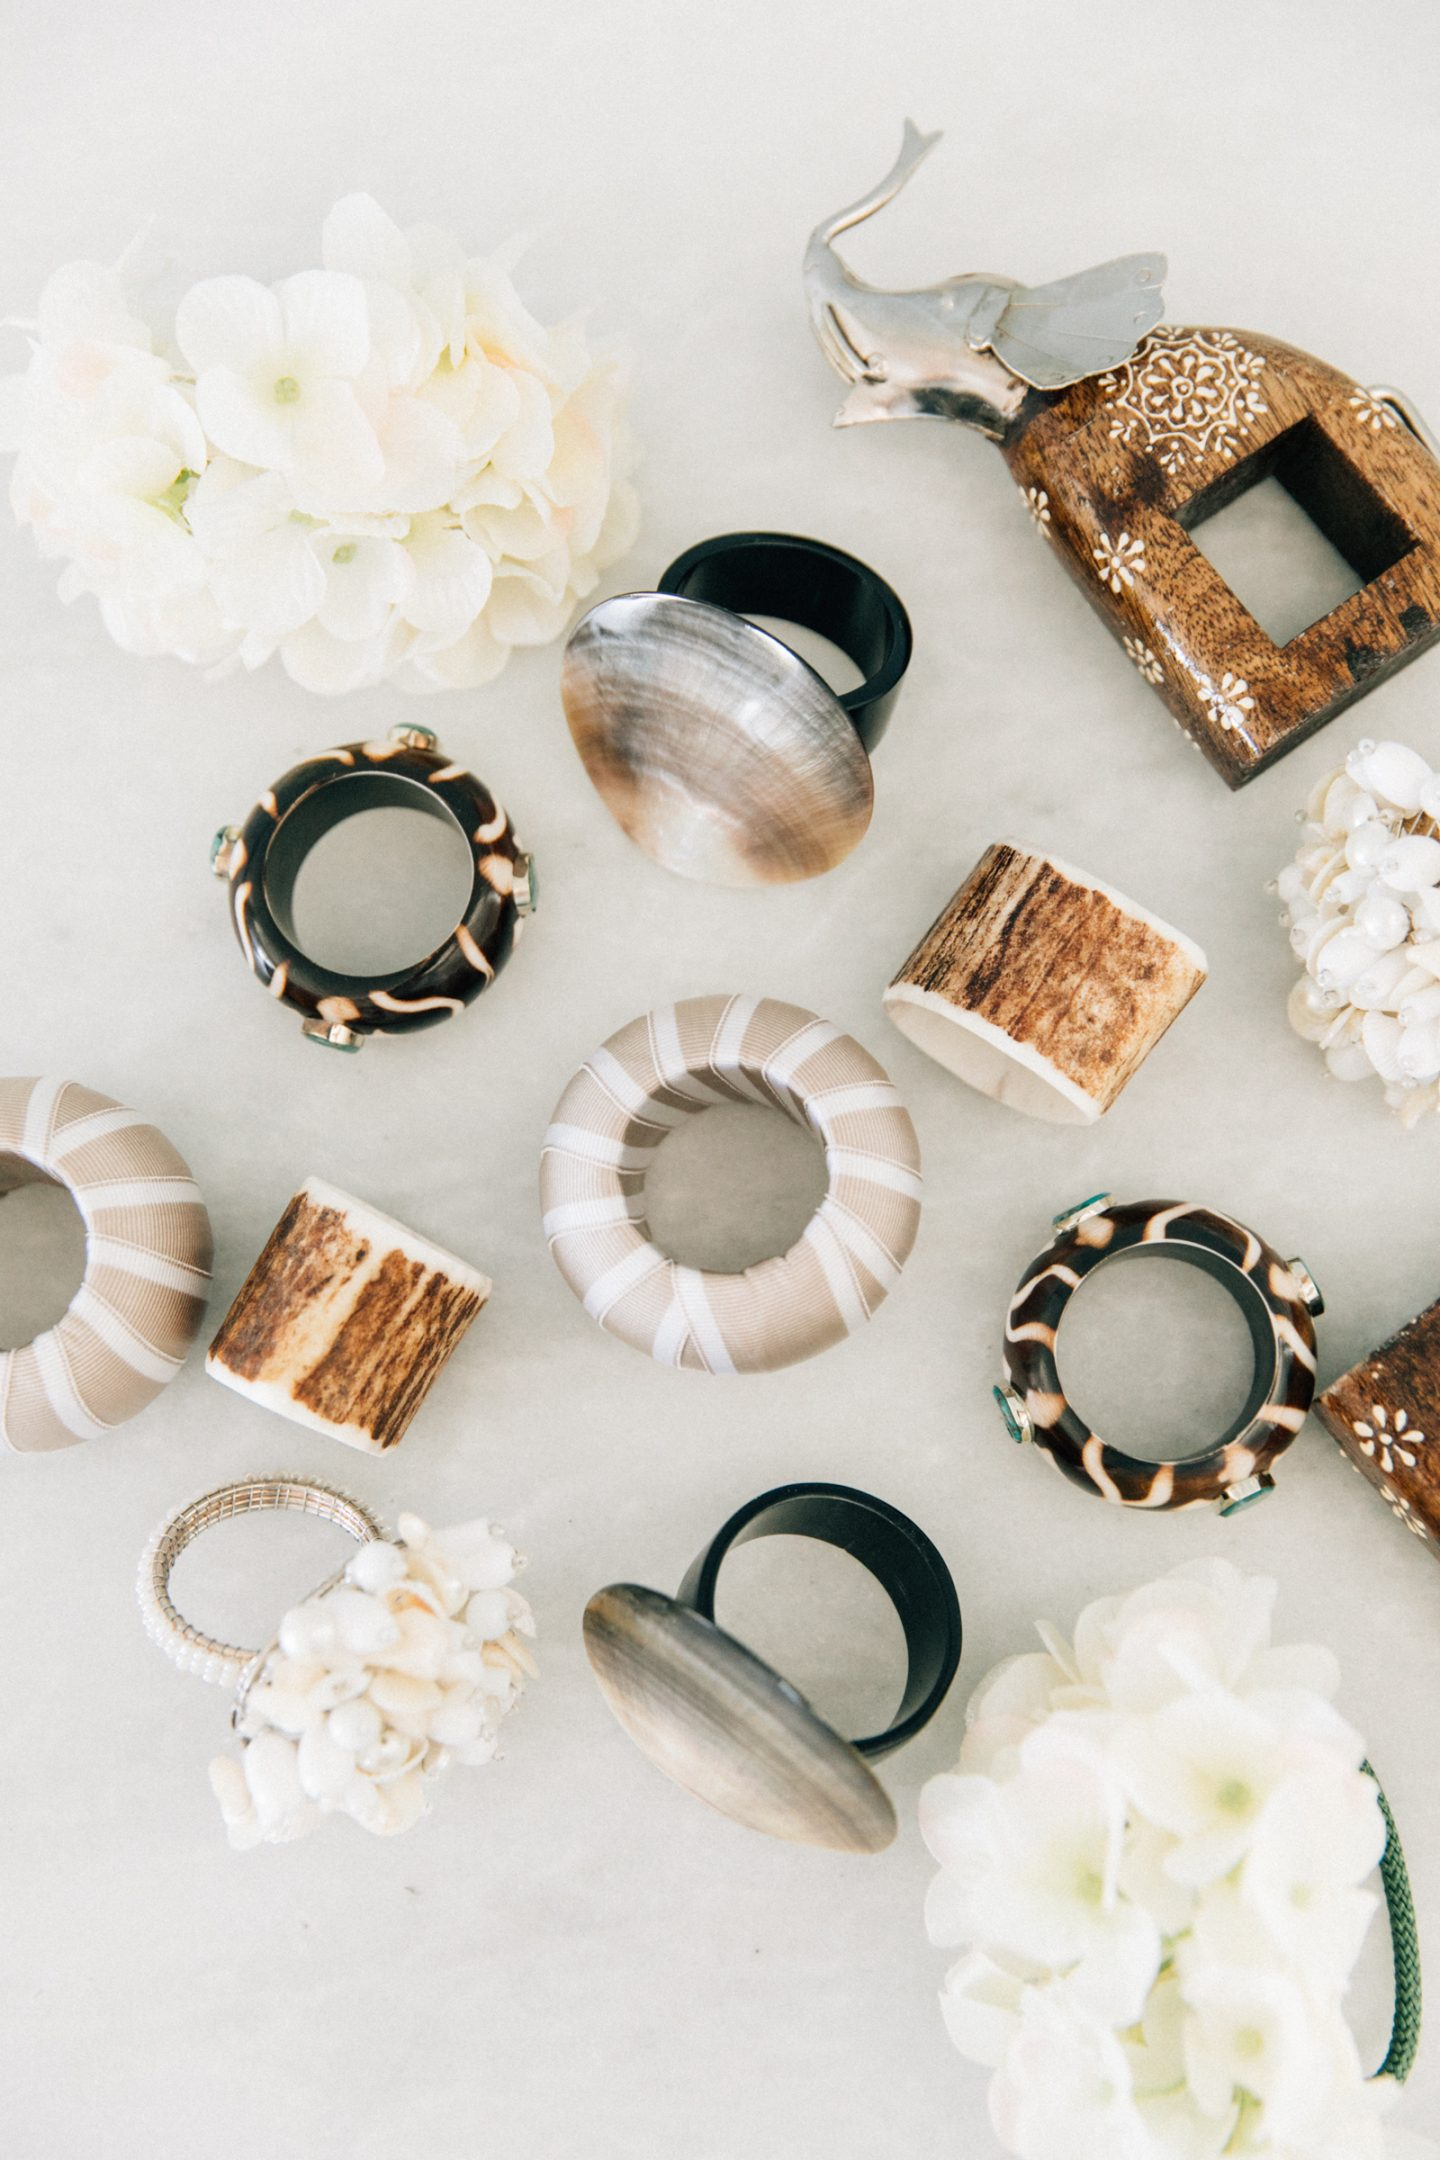 How to Accessorize a Well Dressed Table